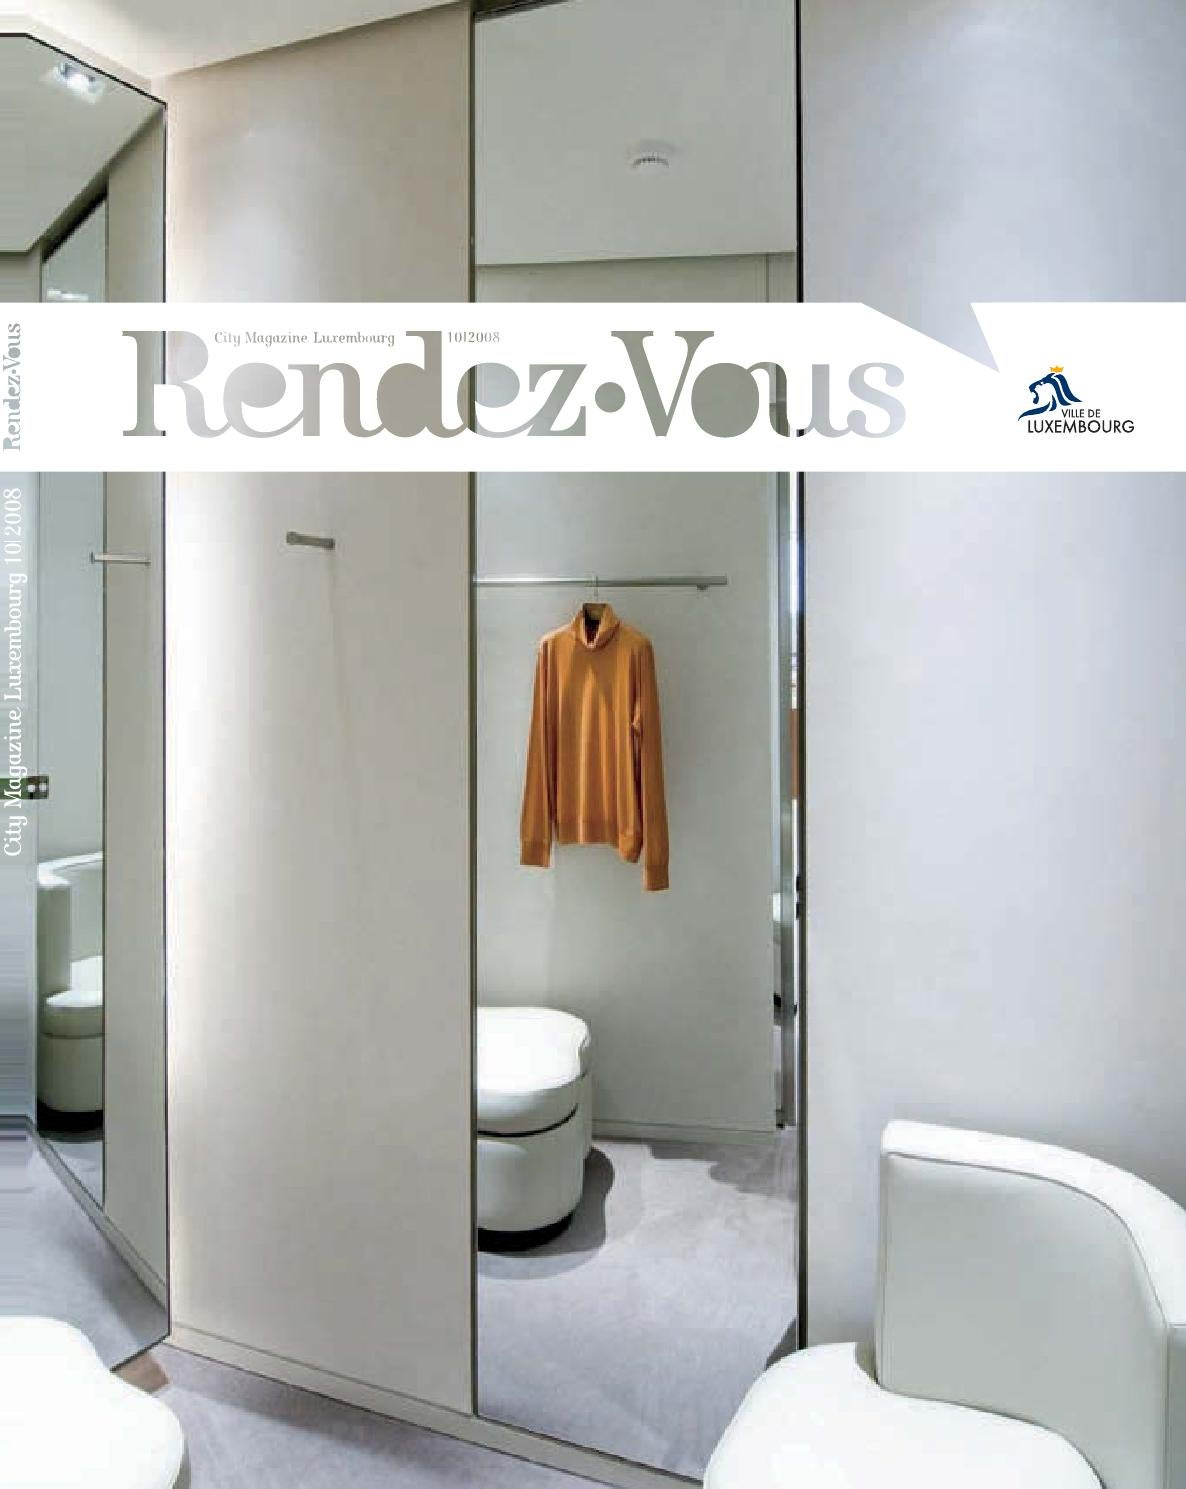 Rendez-vous 10_2008 by Maison Moderne - issuu